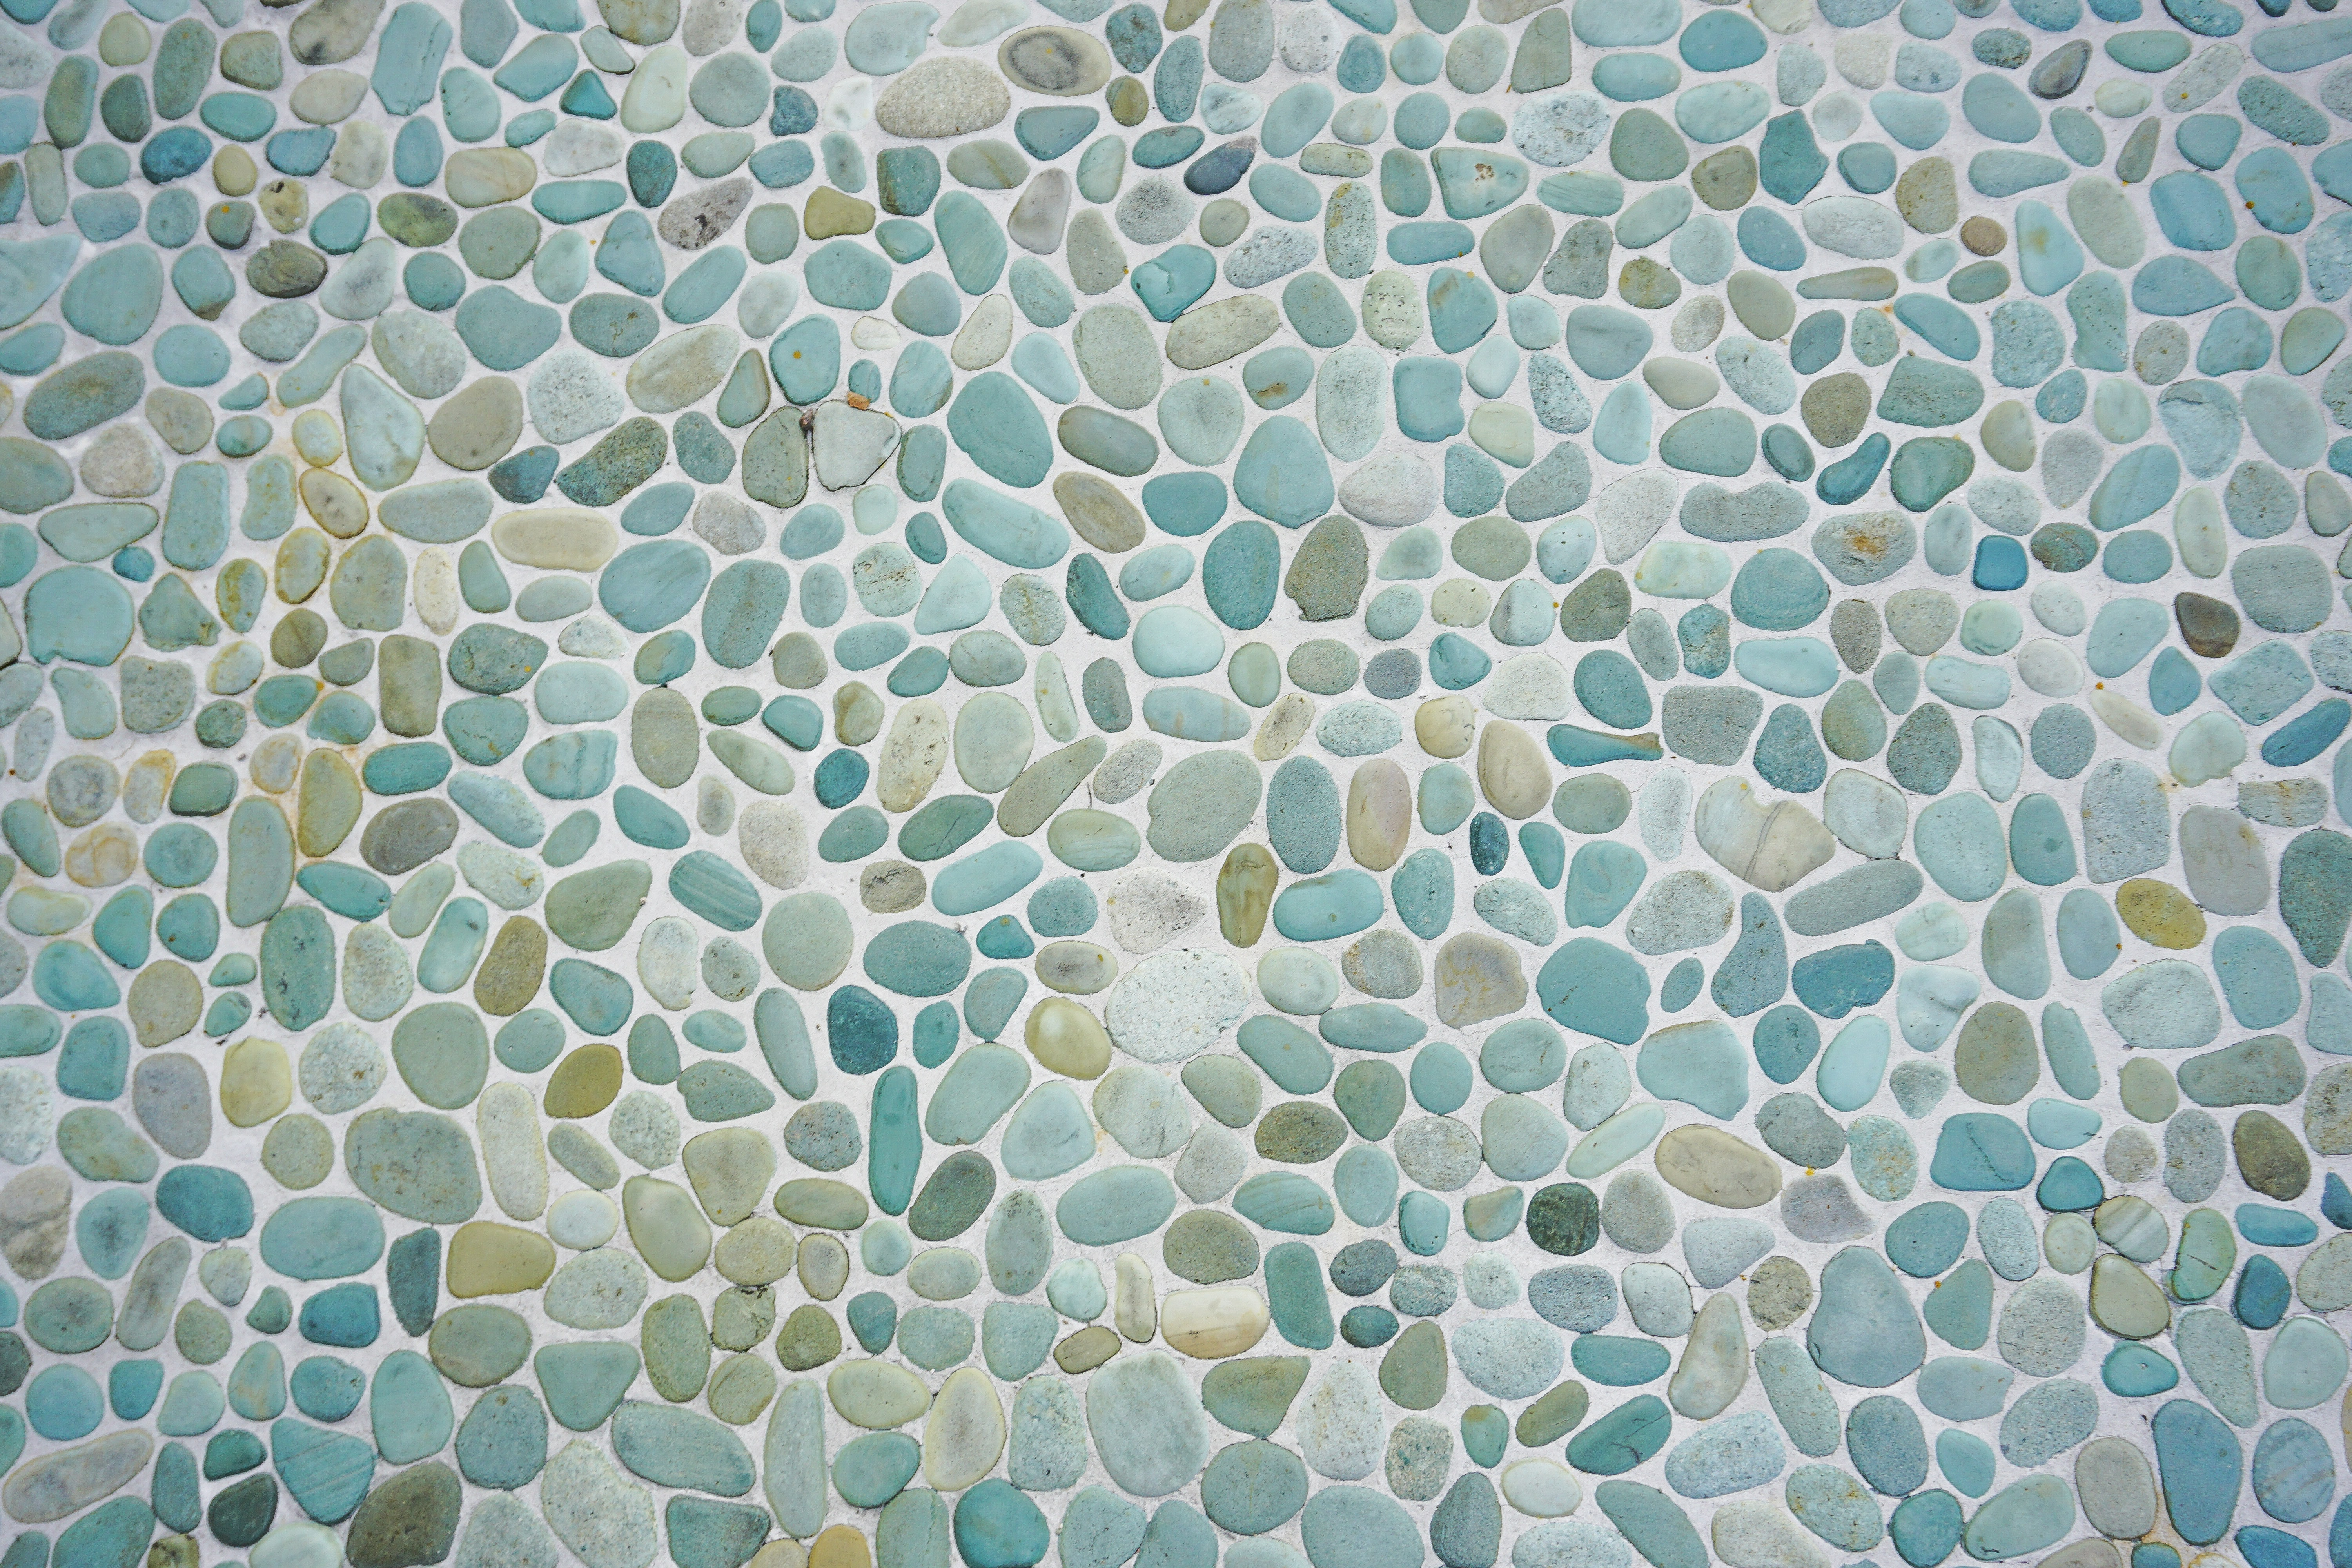 teal and green pebbles